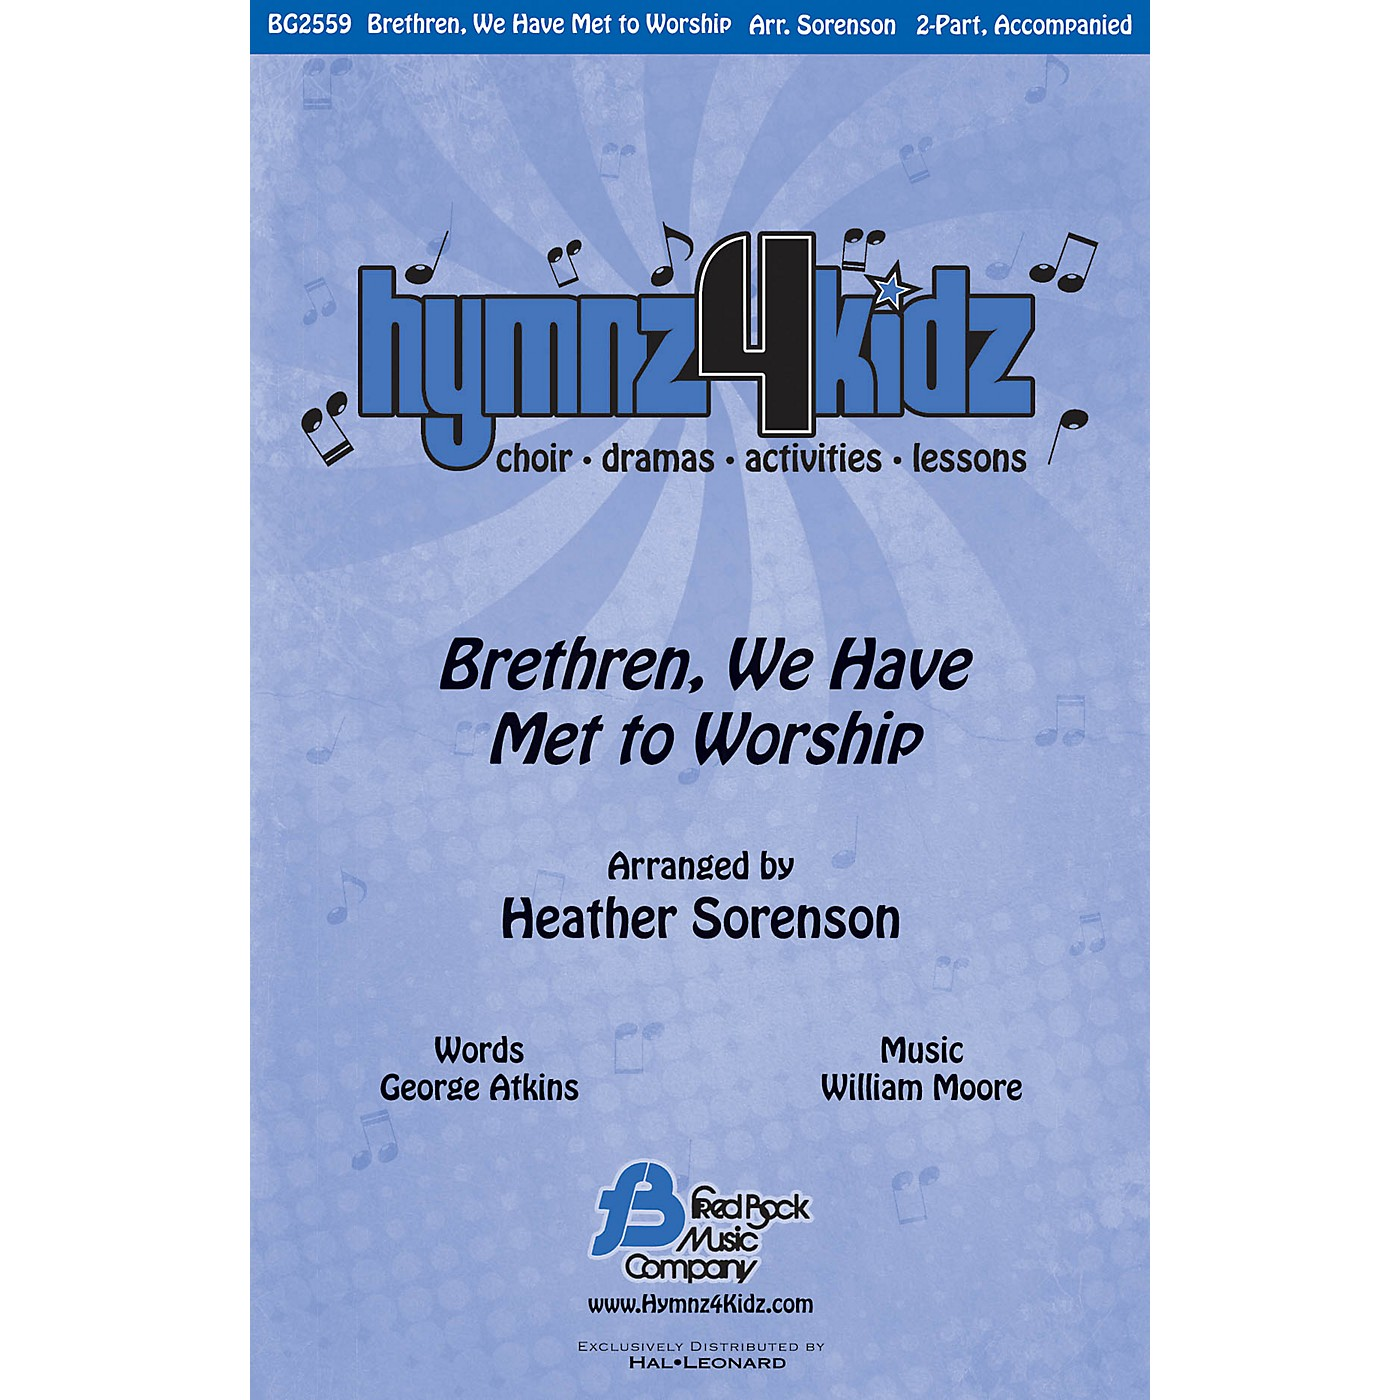 Fred Bock Music Brethren, We Have Met to Worship (Hymnz 4 Kidz Series) 2-Part arranged by Heather Sorenson thumbnail